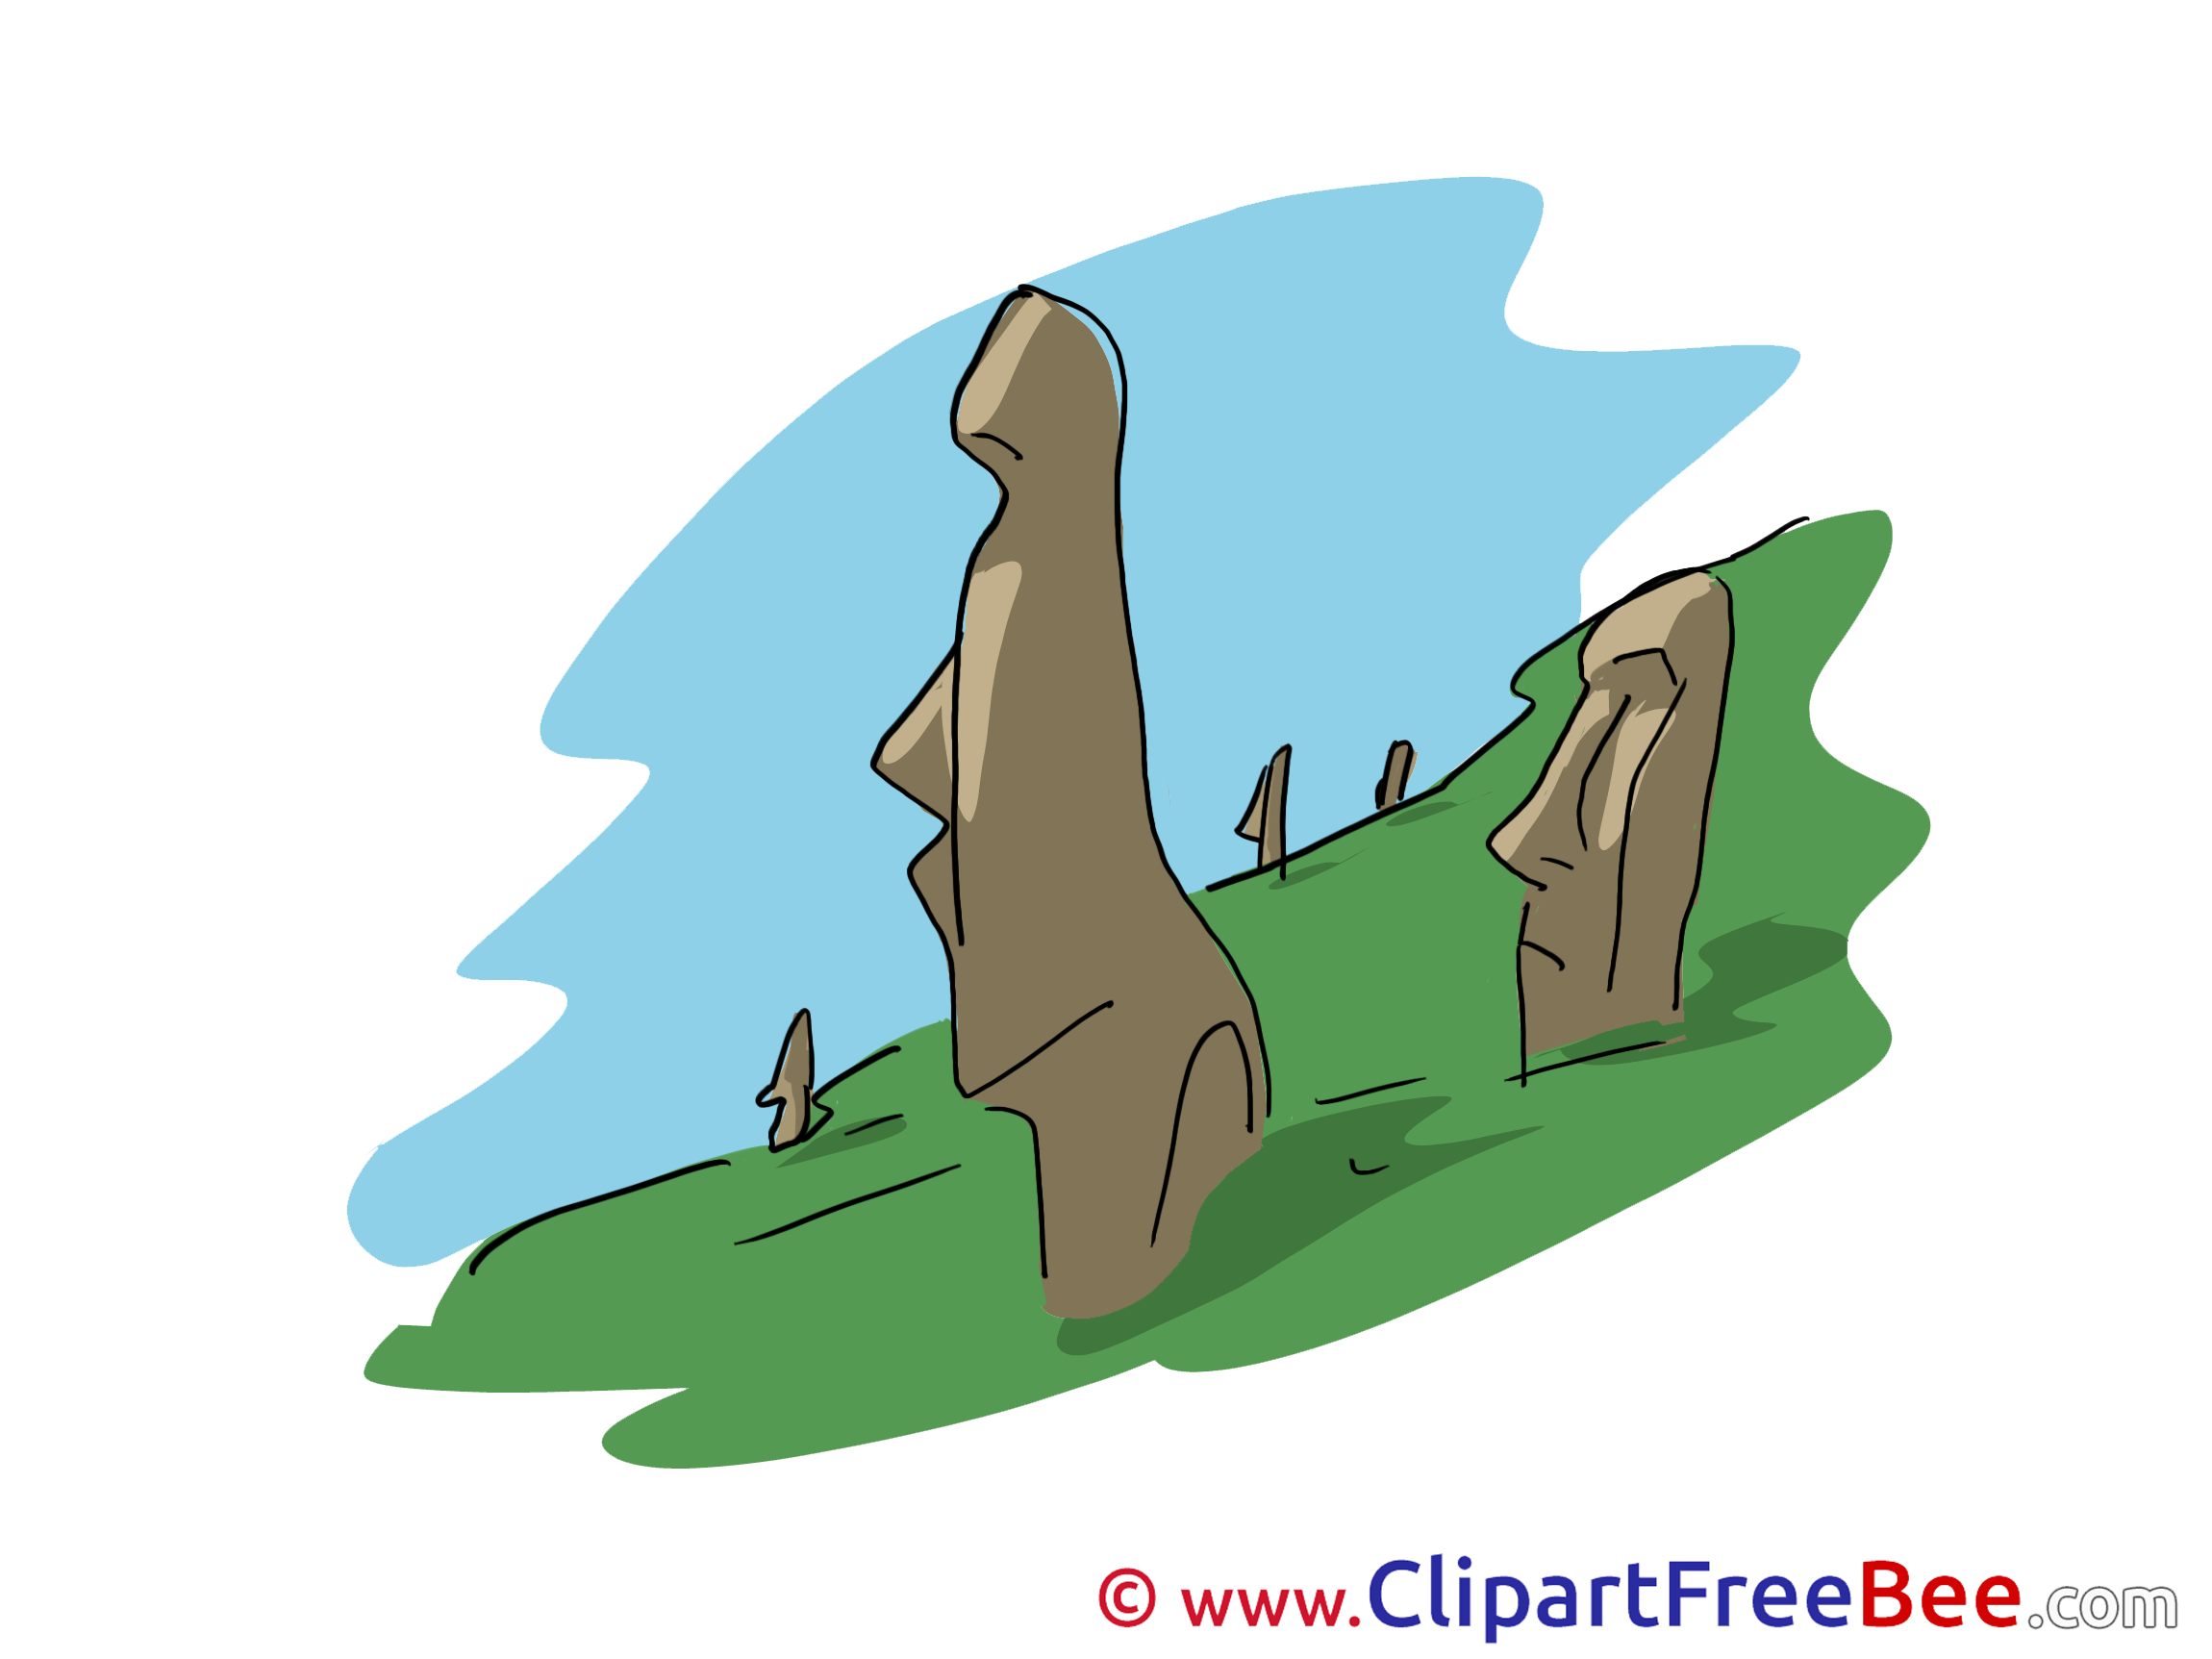 Stonehenge clipart cartoon Stonehenge free for download